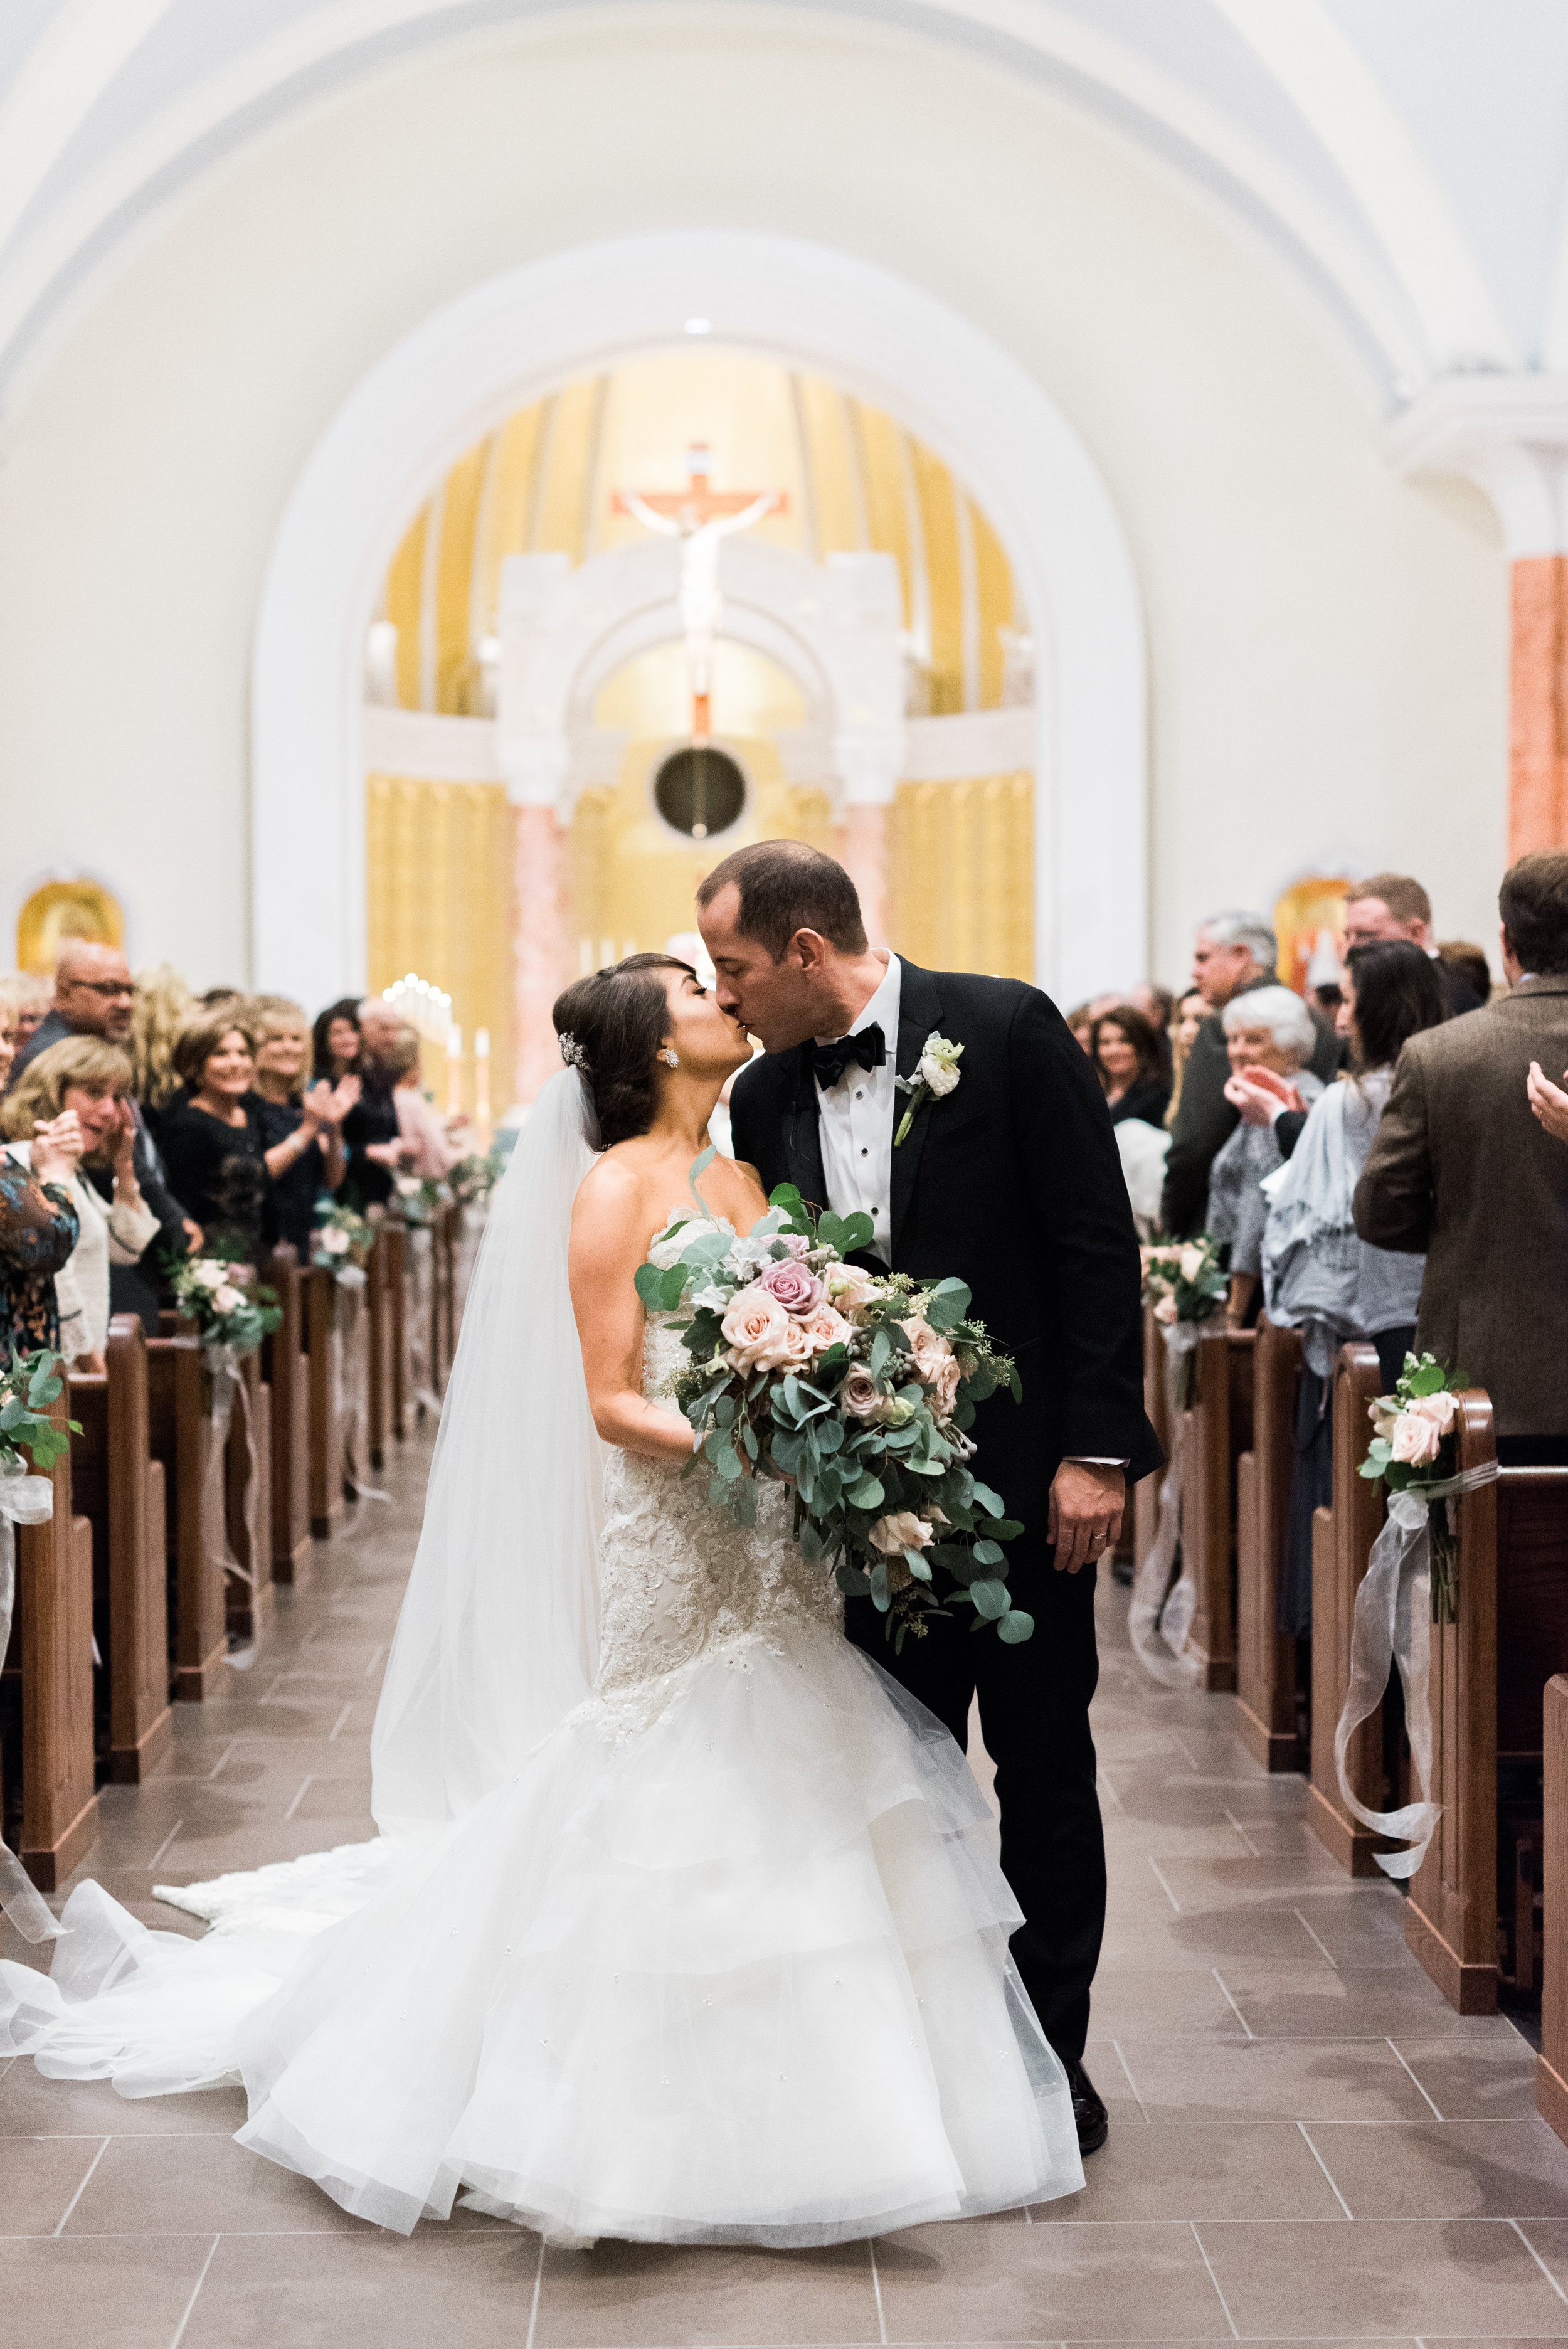 Southern Fete, Southern Wedding, St. Pius Catholic Church, Ceremony, Bride and Groom